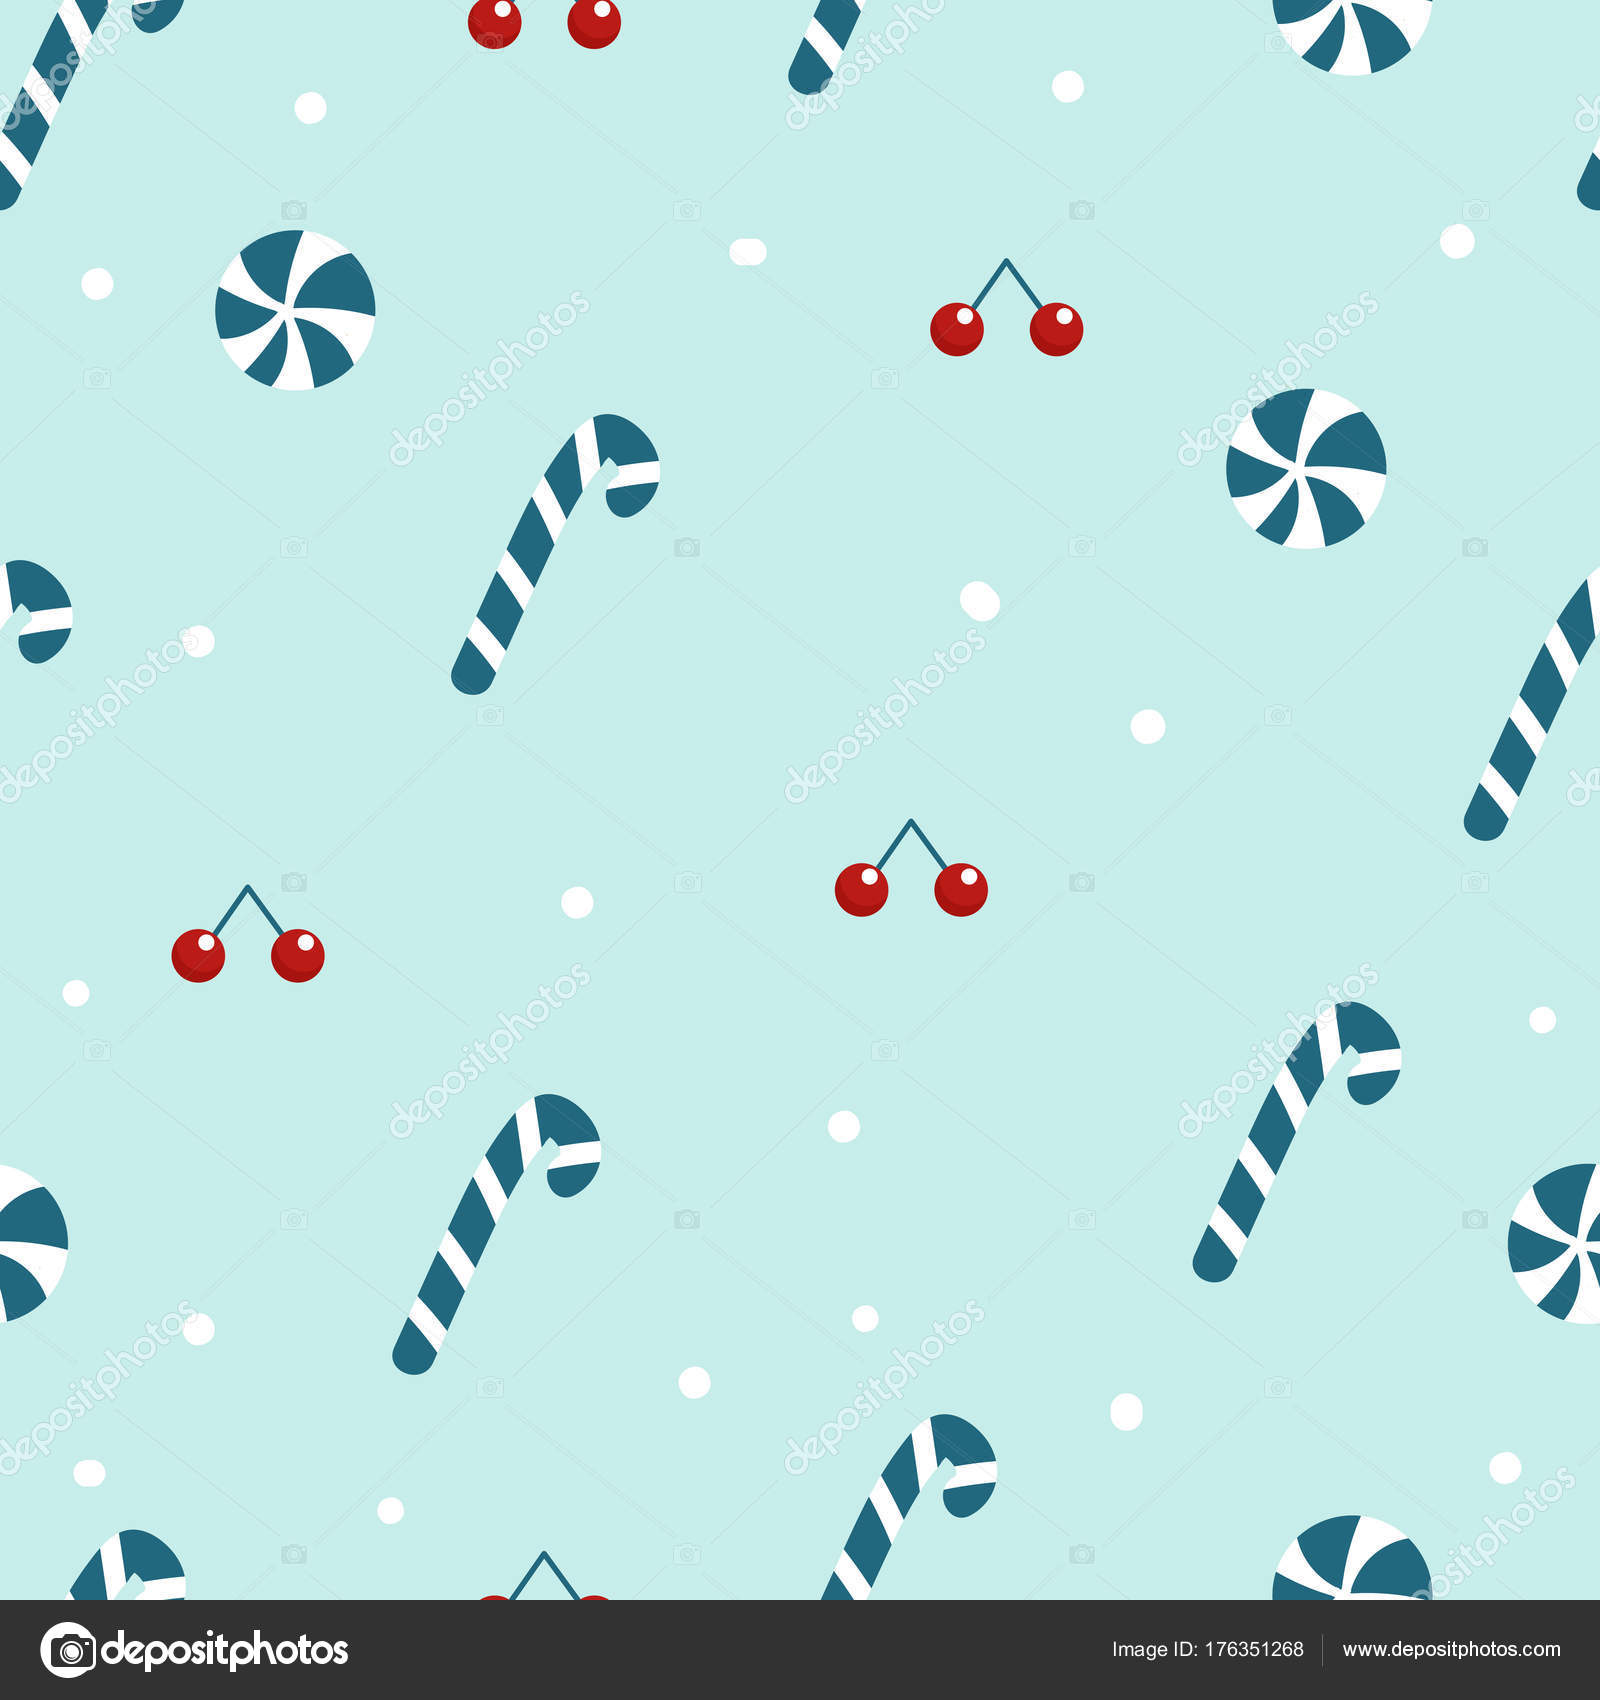 Blue Candy Cane And Christmas Cookies Wallpaper Seamless Pattern Vector By 13kovtungmail